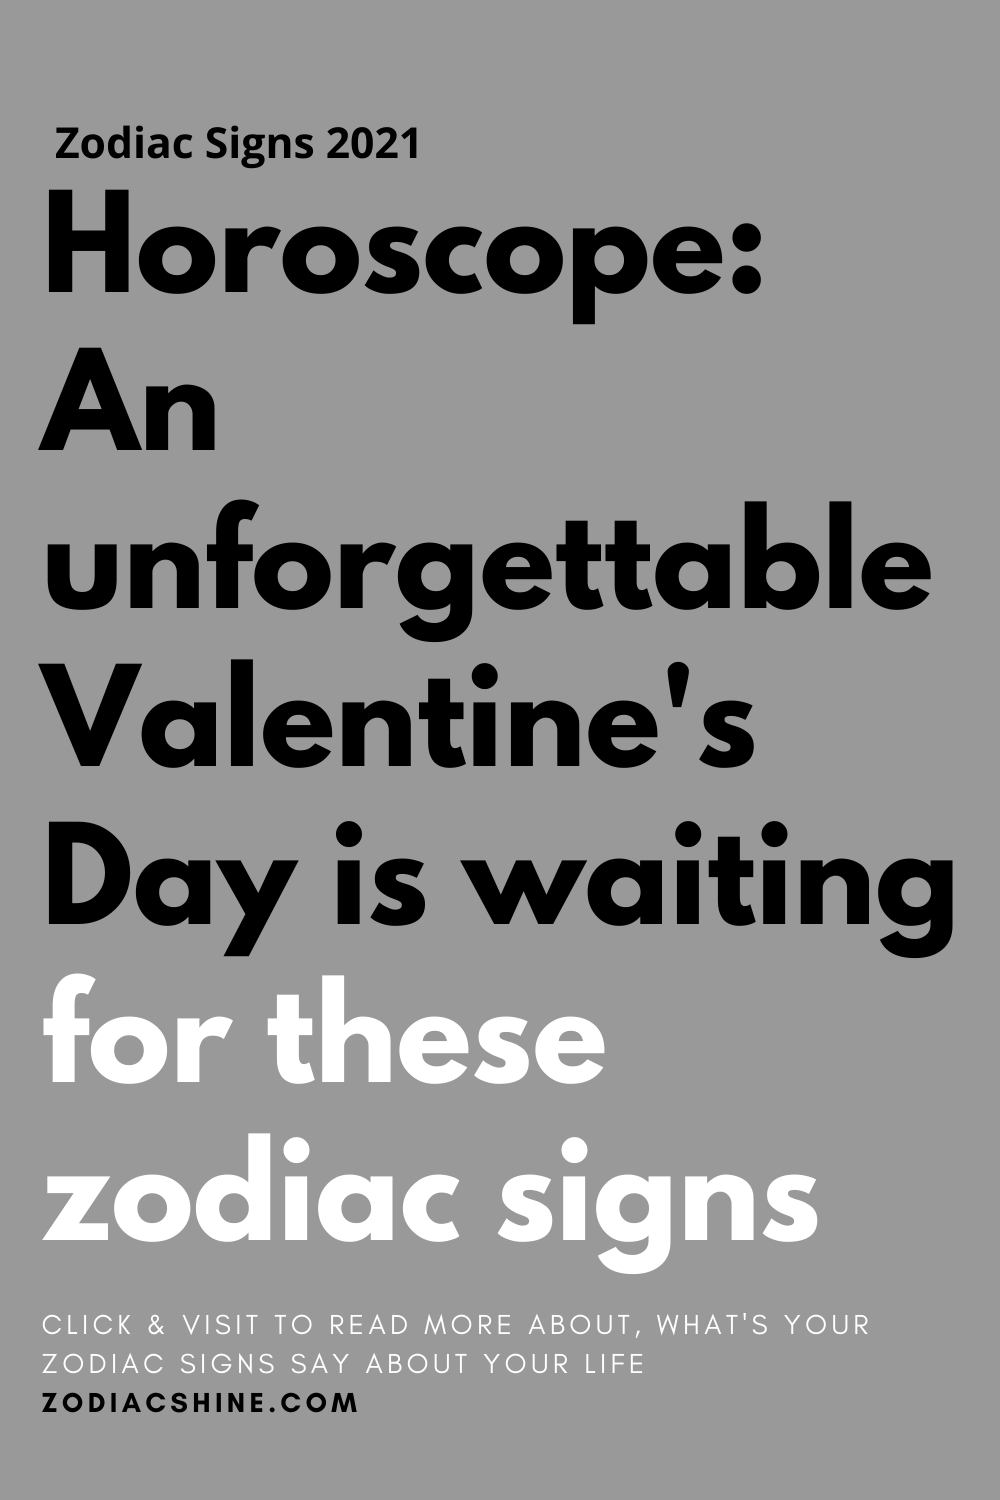 Horoscope: An unforgettable Valentine's Day is waiting for these zodiac signs